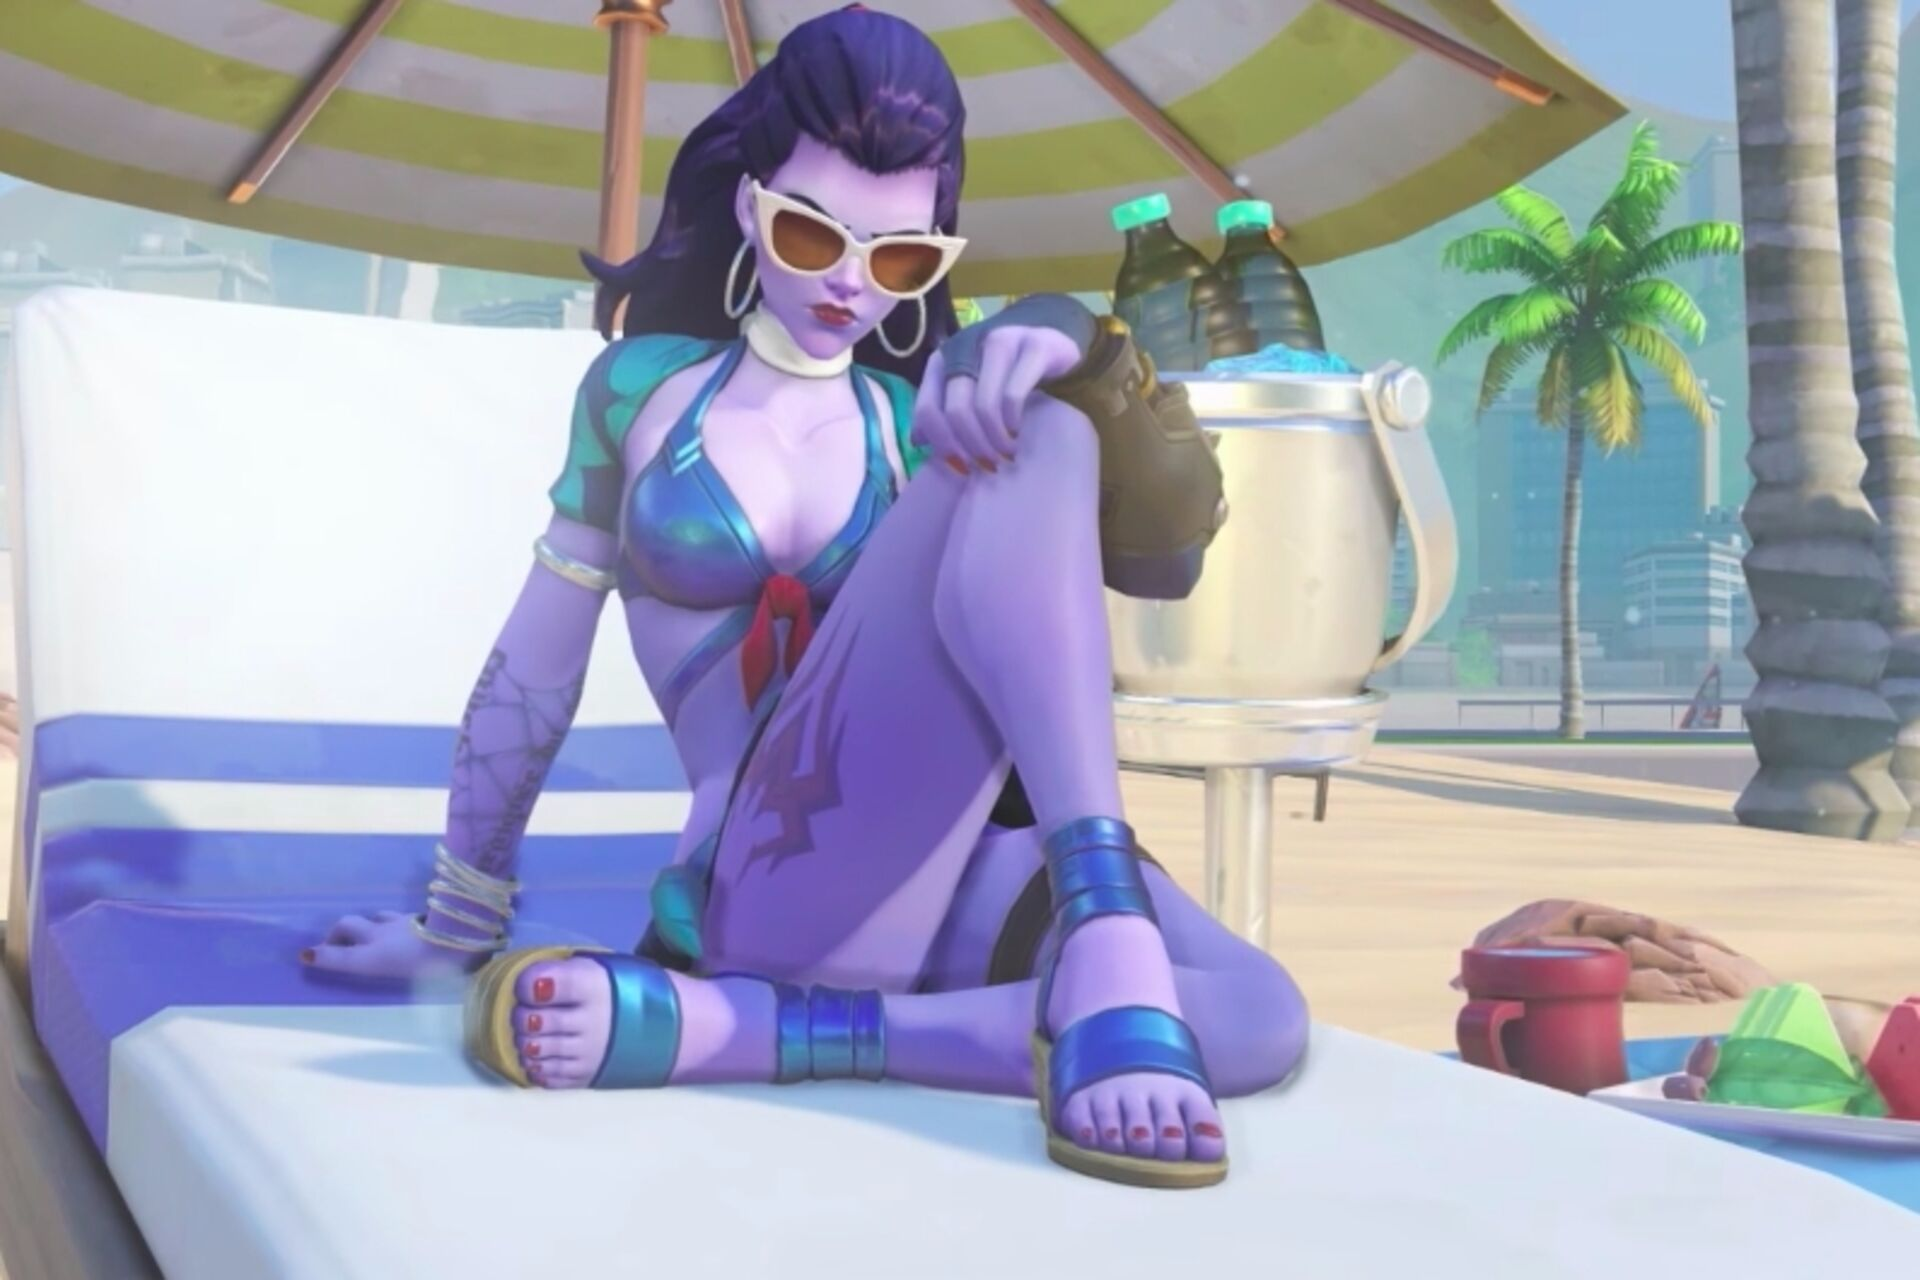 Behold Overwatch's beach-based Summer Games skins • Eurogamer.net